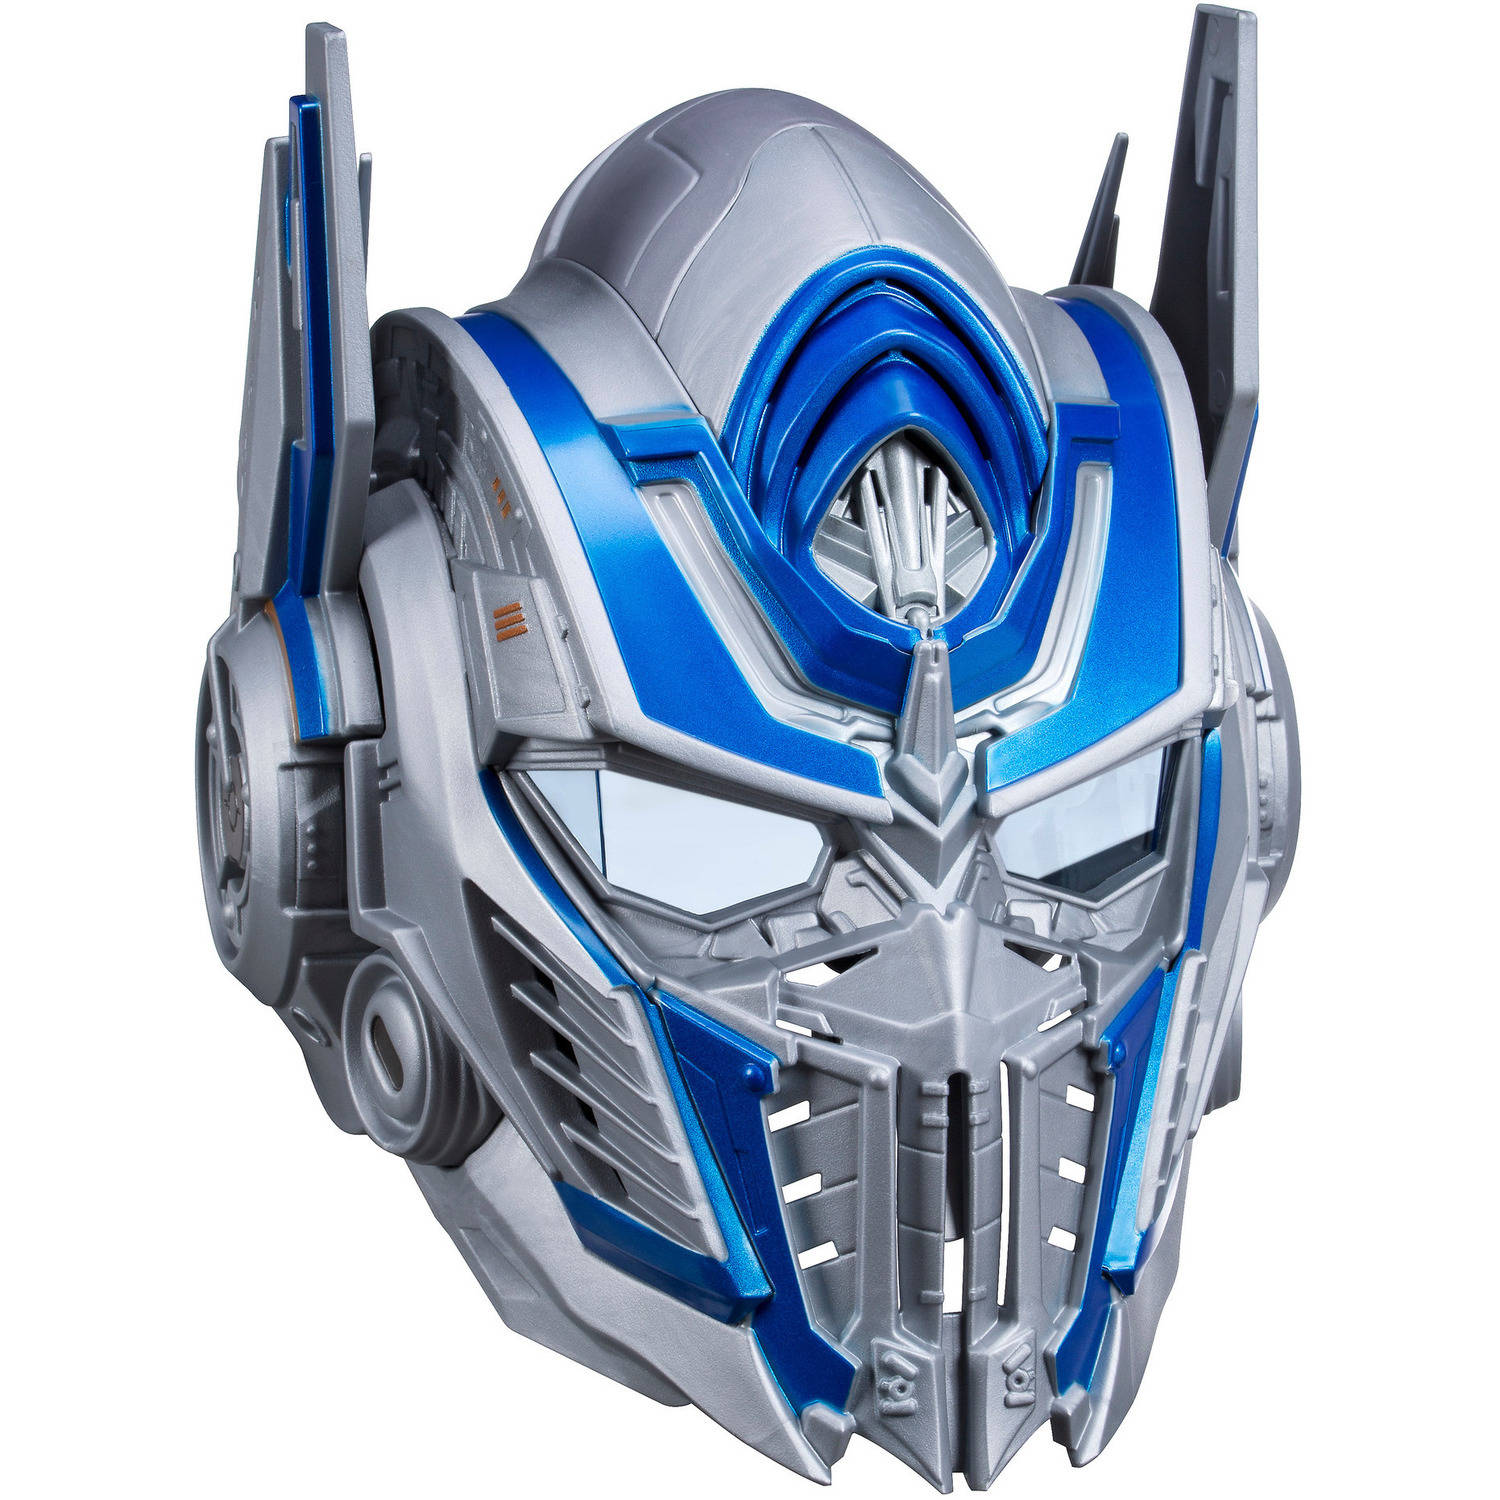 Transformers The Last Knight Optimus Prime Voice Changer Helmet by